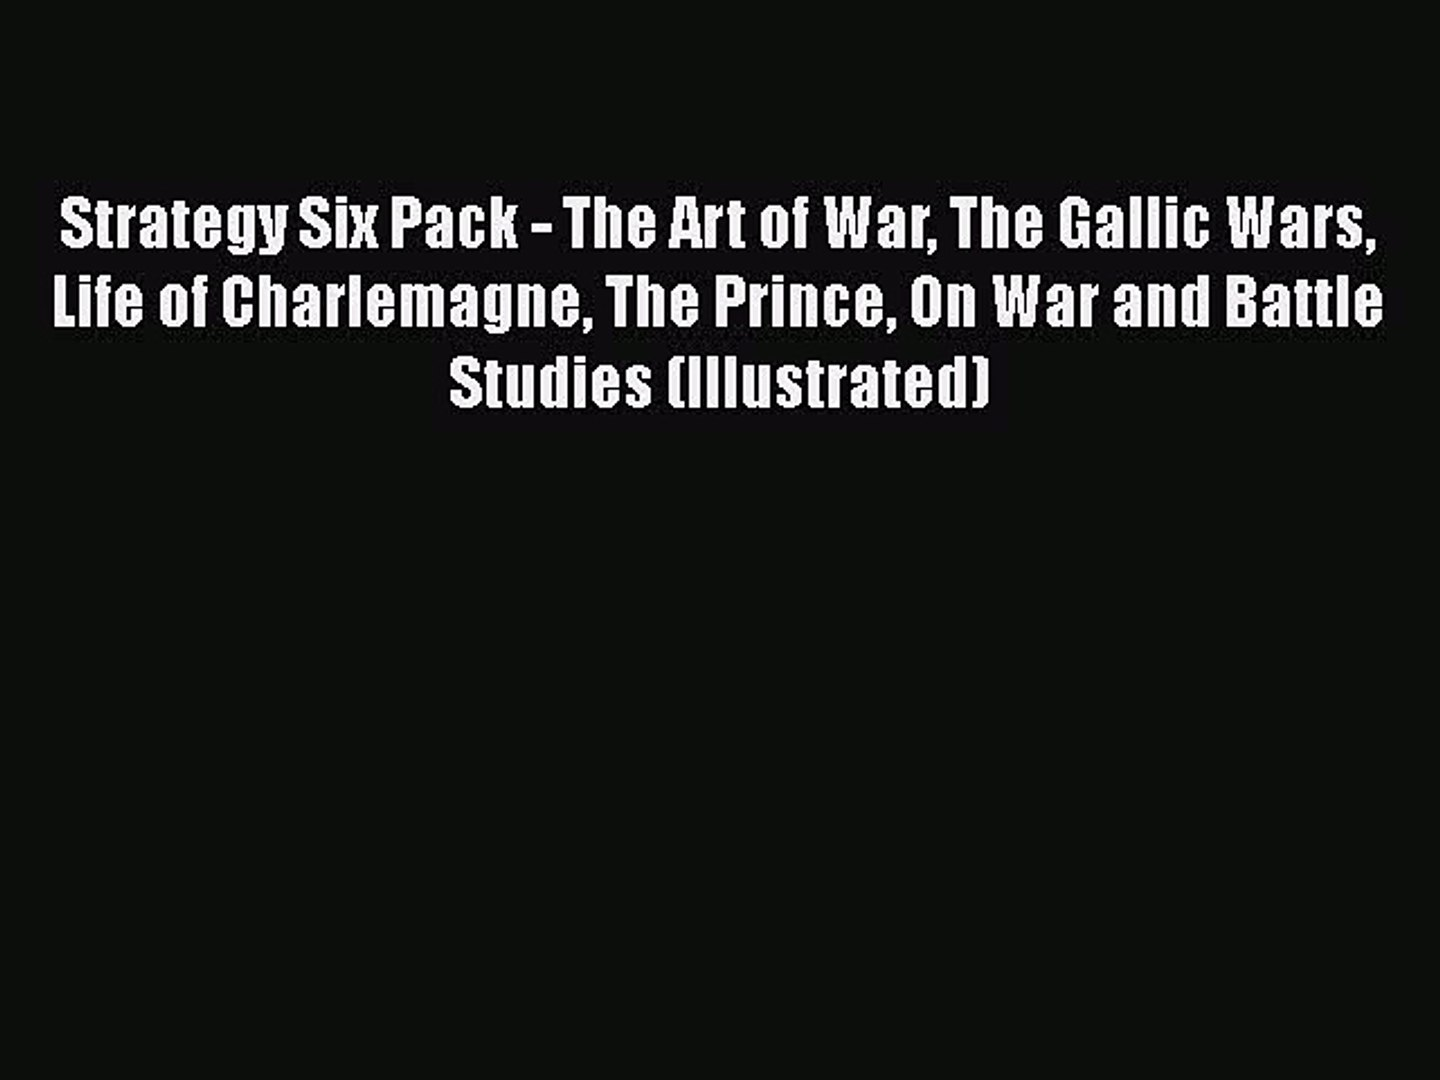 Read Strategy Six Pack - The Art of War The Gallic Wars Life of Charlemagne The Prince On War